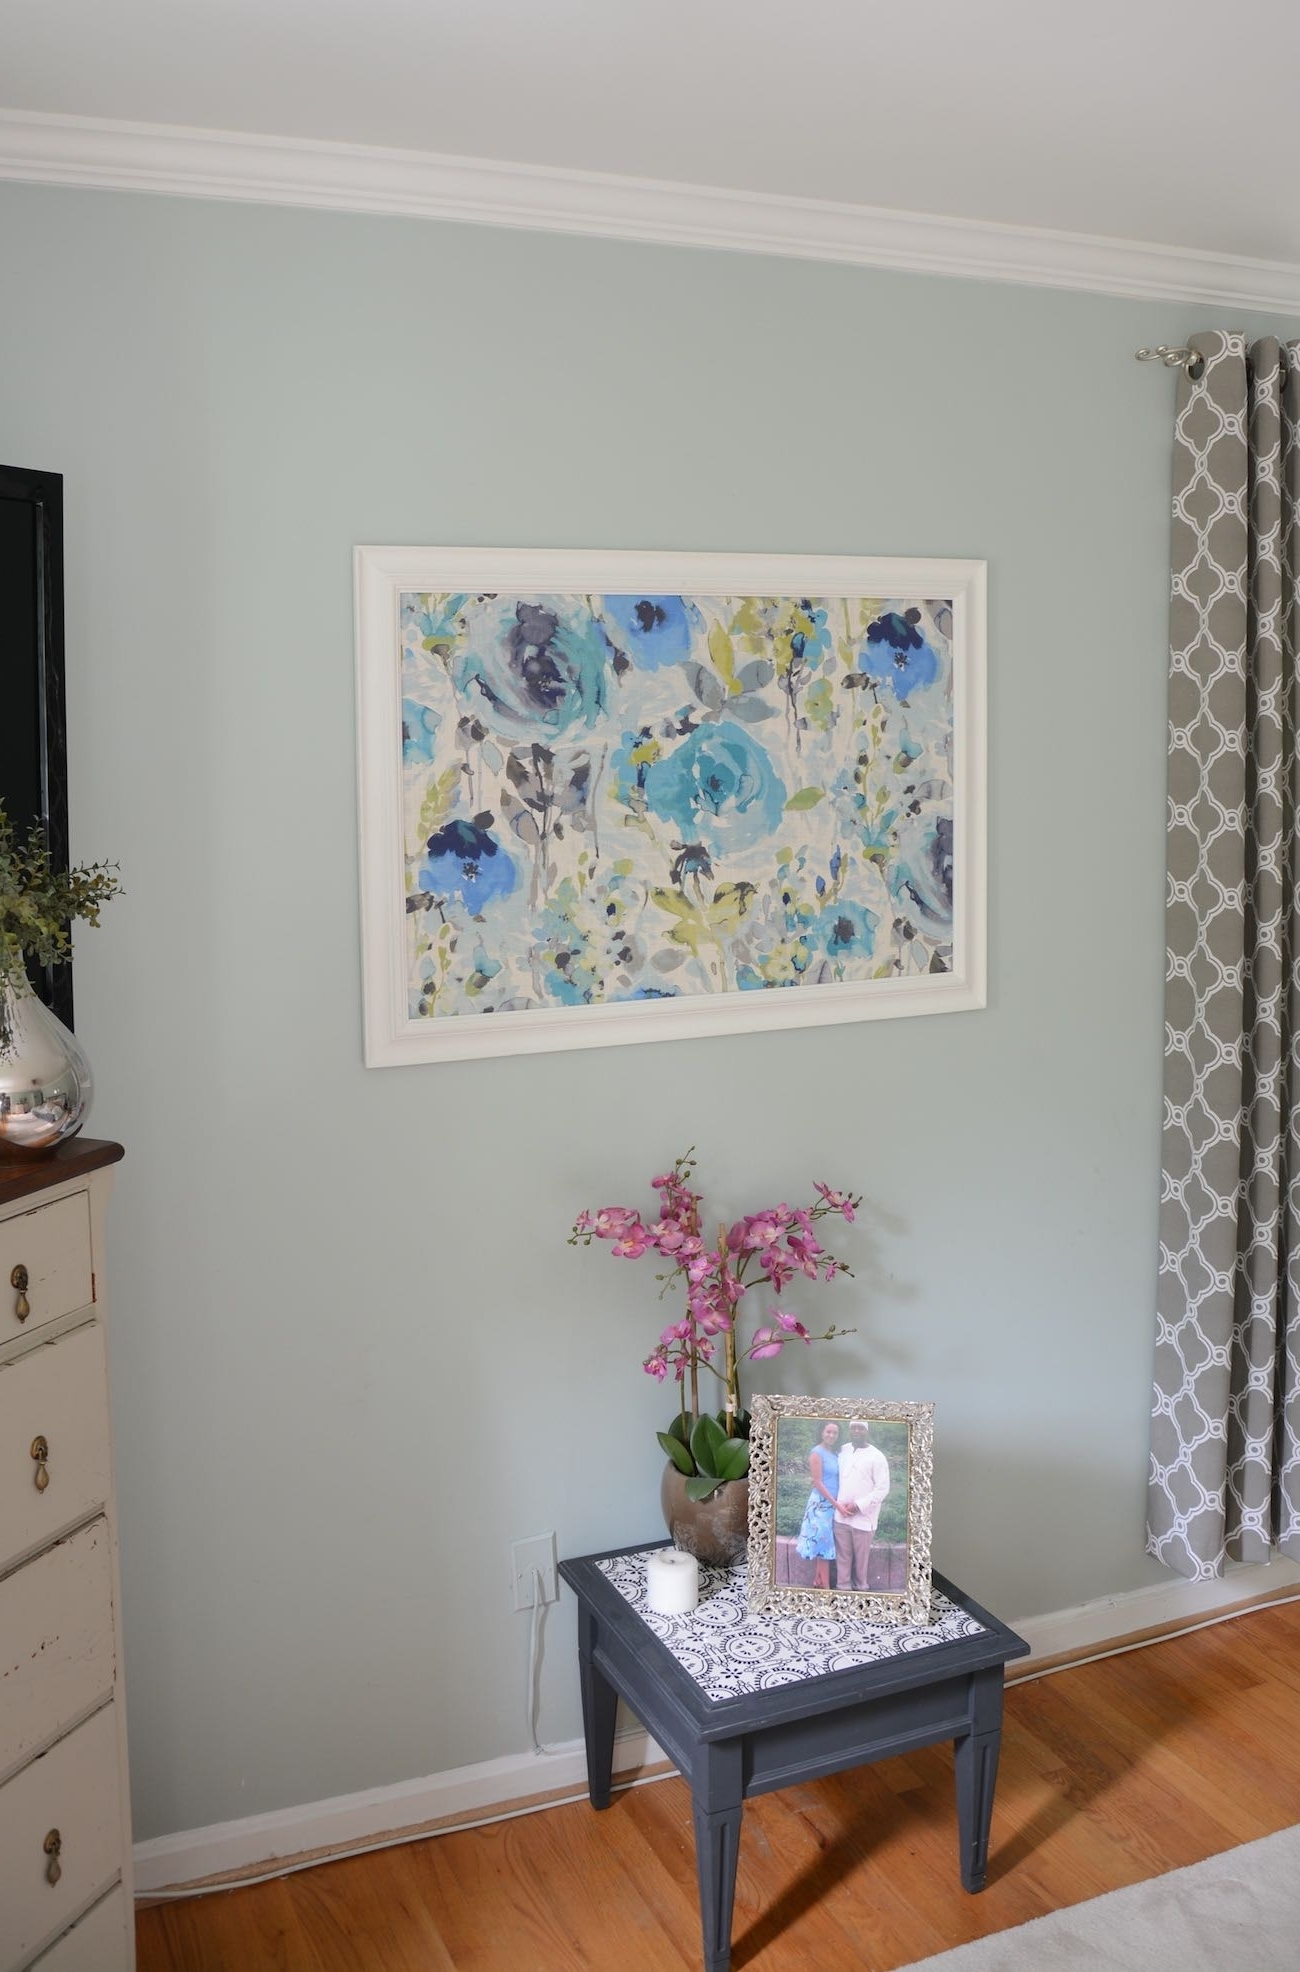 Preferred How To Frame Fabric For Wall Art With A Picture Frame Intended For Fabric Wall Art (View 12 of 15)